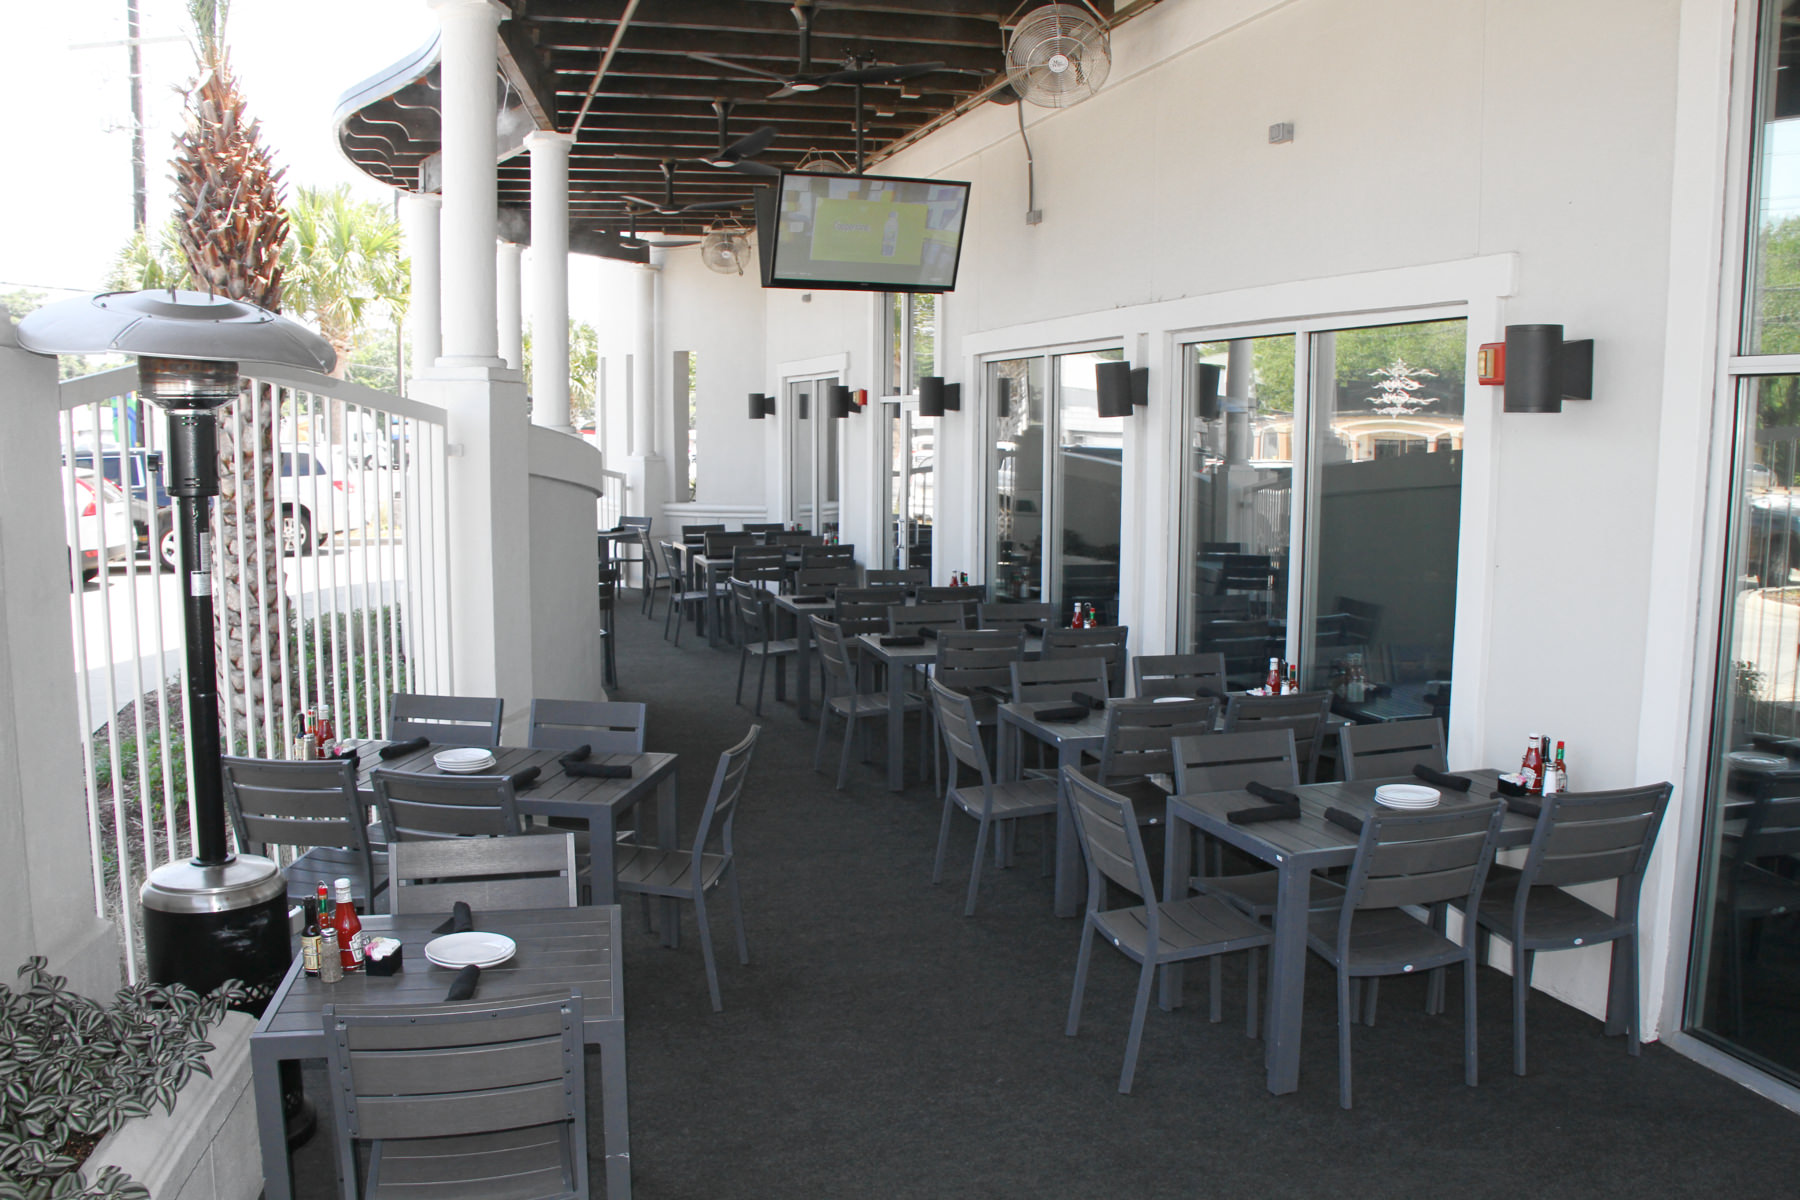 Patio area at Drago's Seafood Restaurant in Lafayette